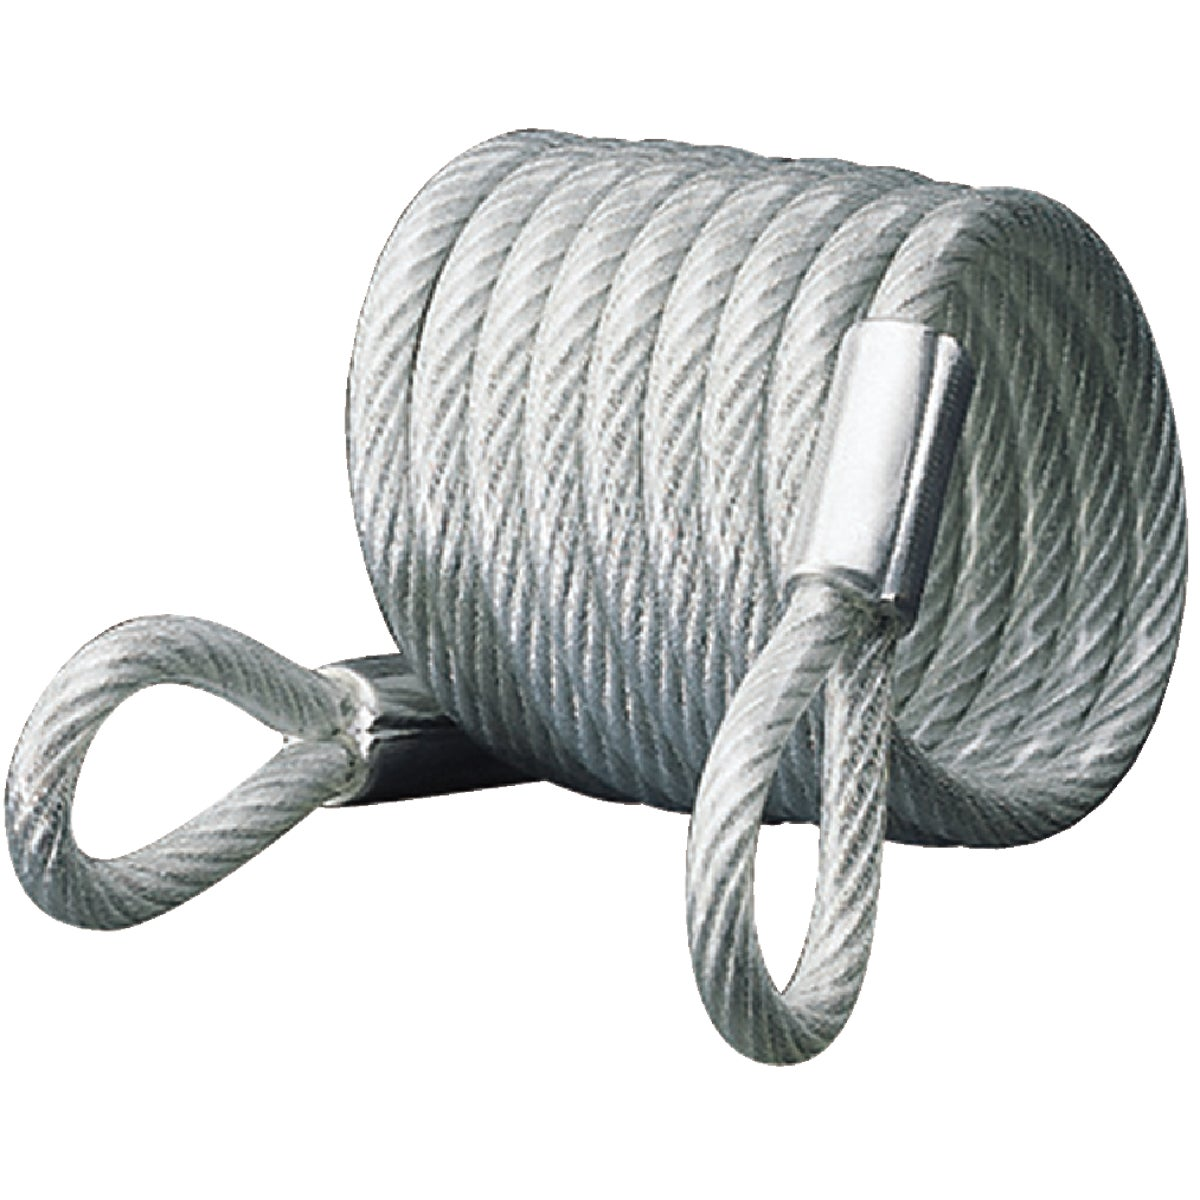 6' SELF-COILING CABLE